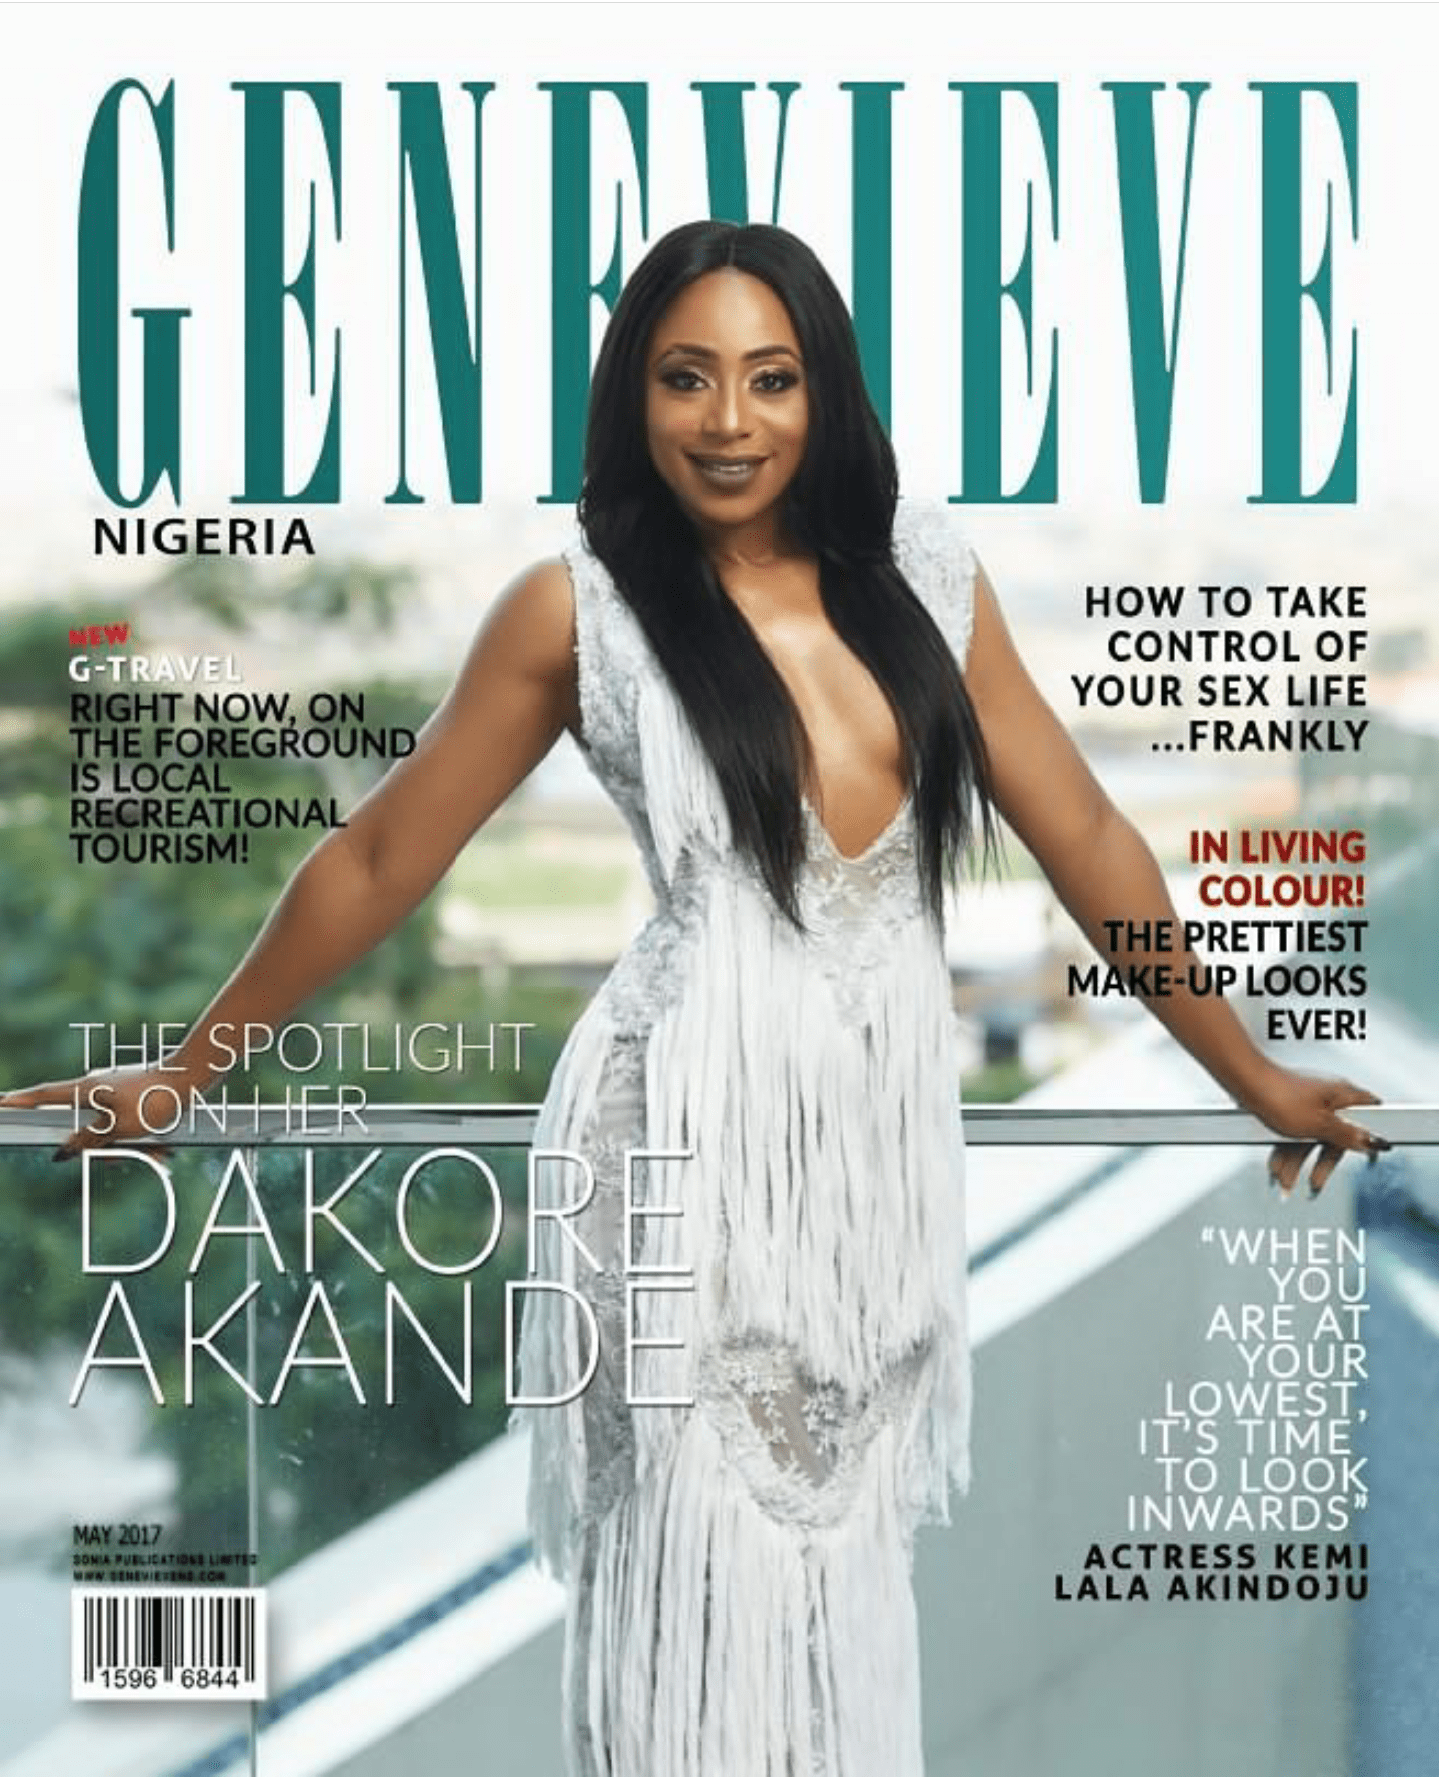 "Nollywood Star Dakore Akande Opens Up About Her Life Says…""Marriage Has Made Me More Patient"""